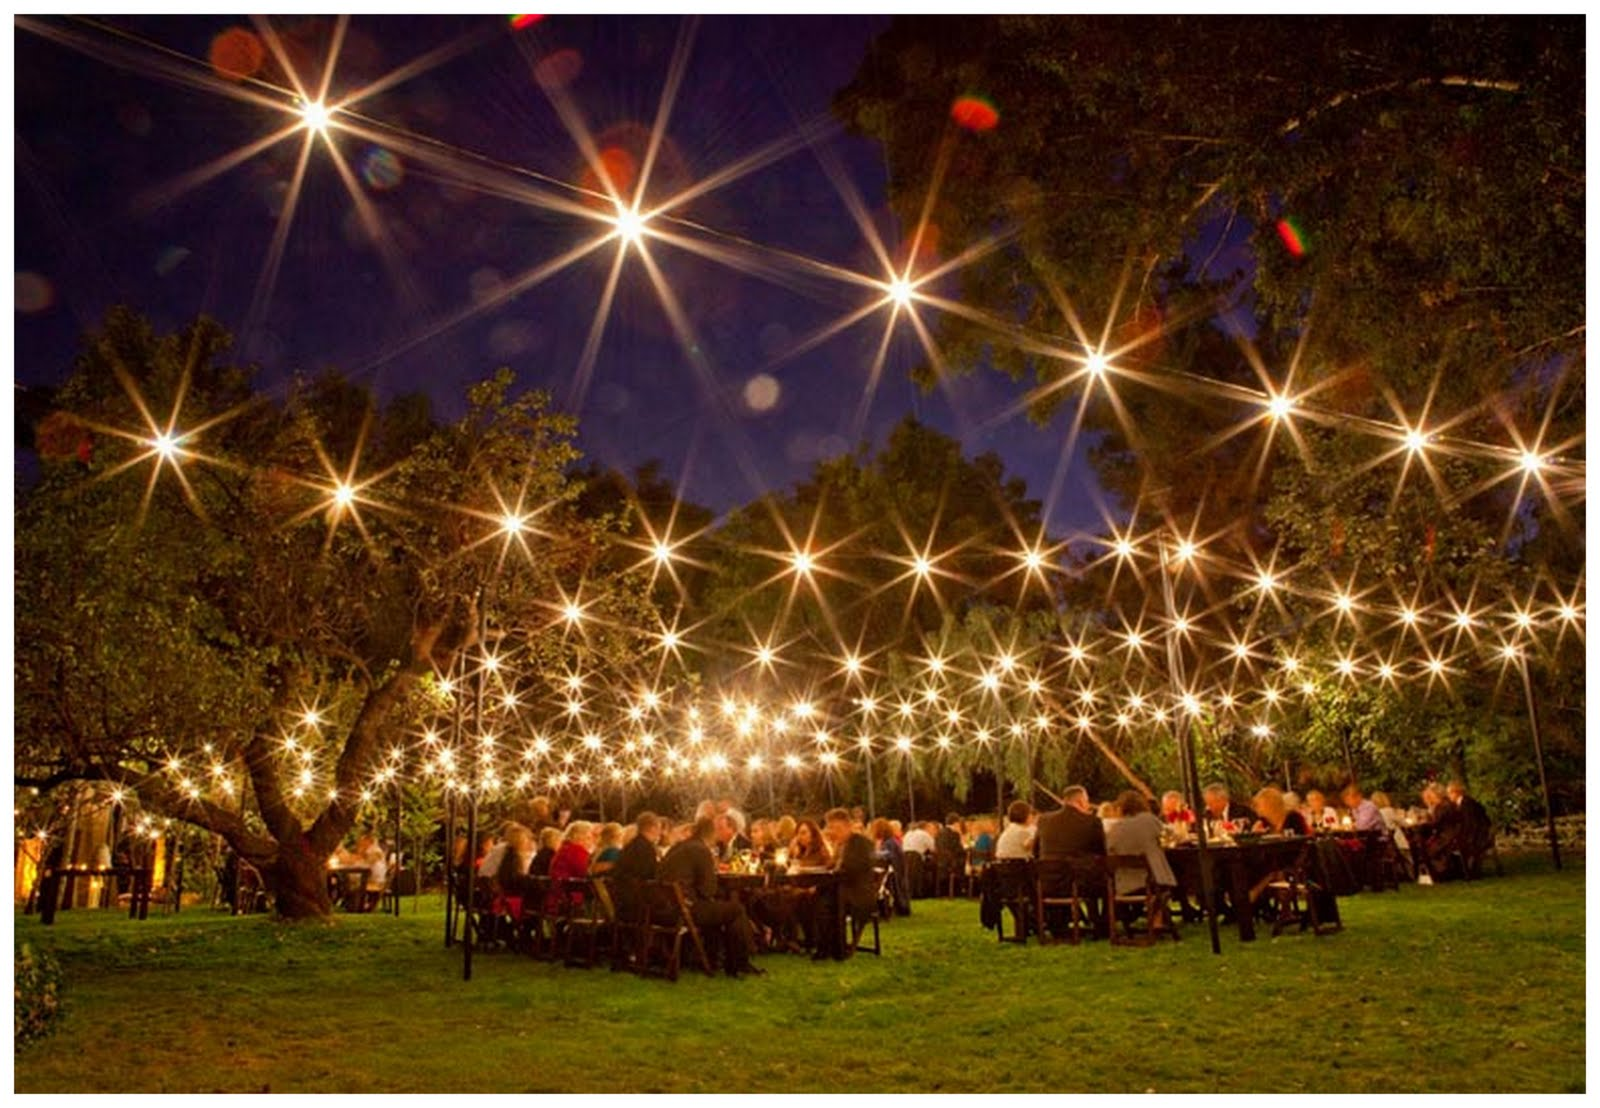 How To Decorate A Garden For A Party With Lights?